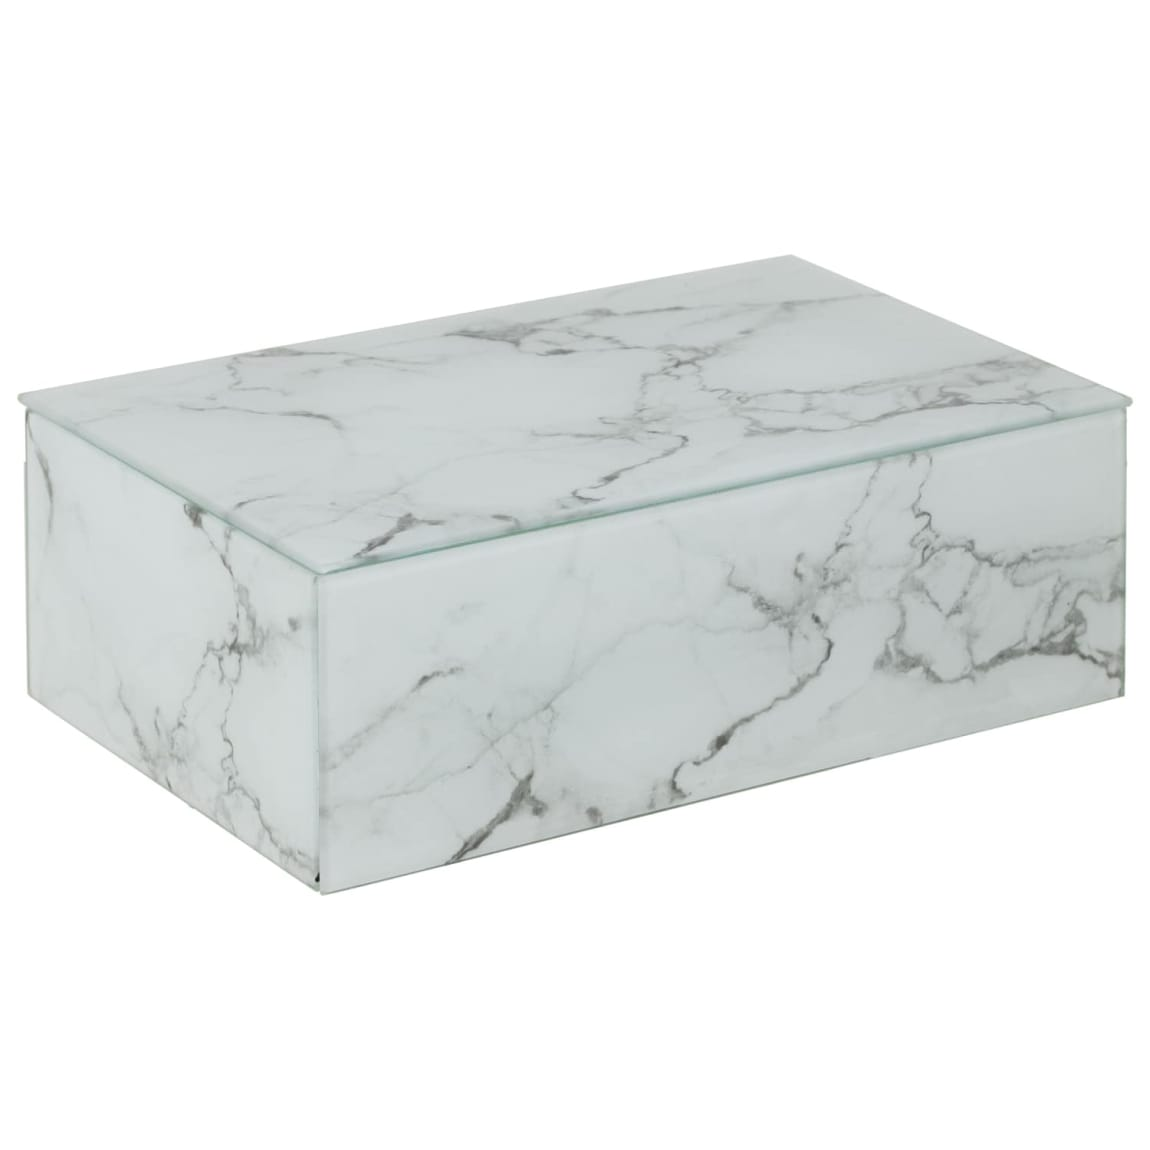 Marble Effect Jewellery Box - Grey